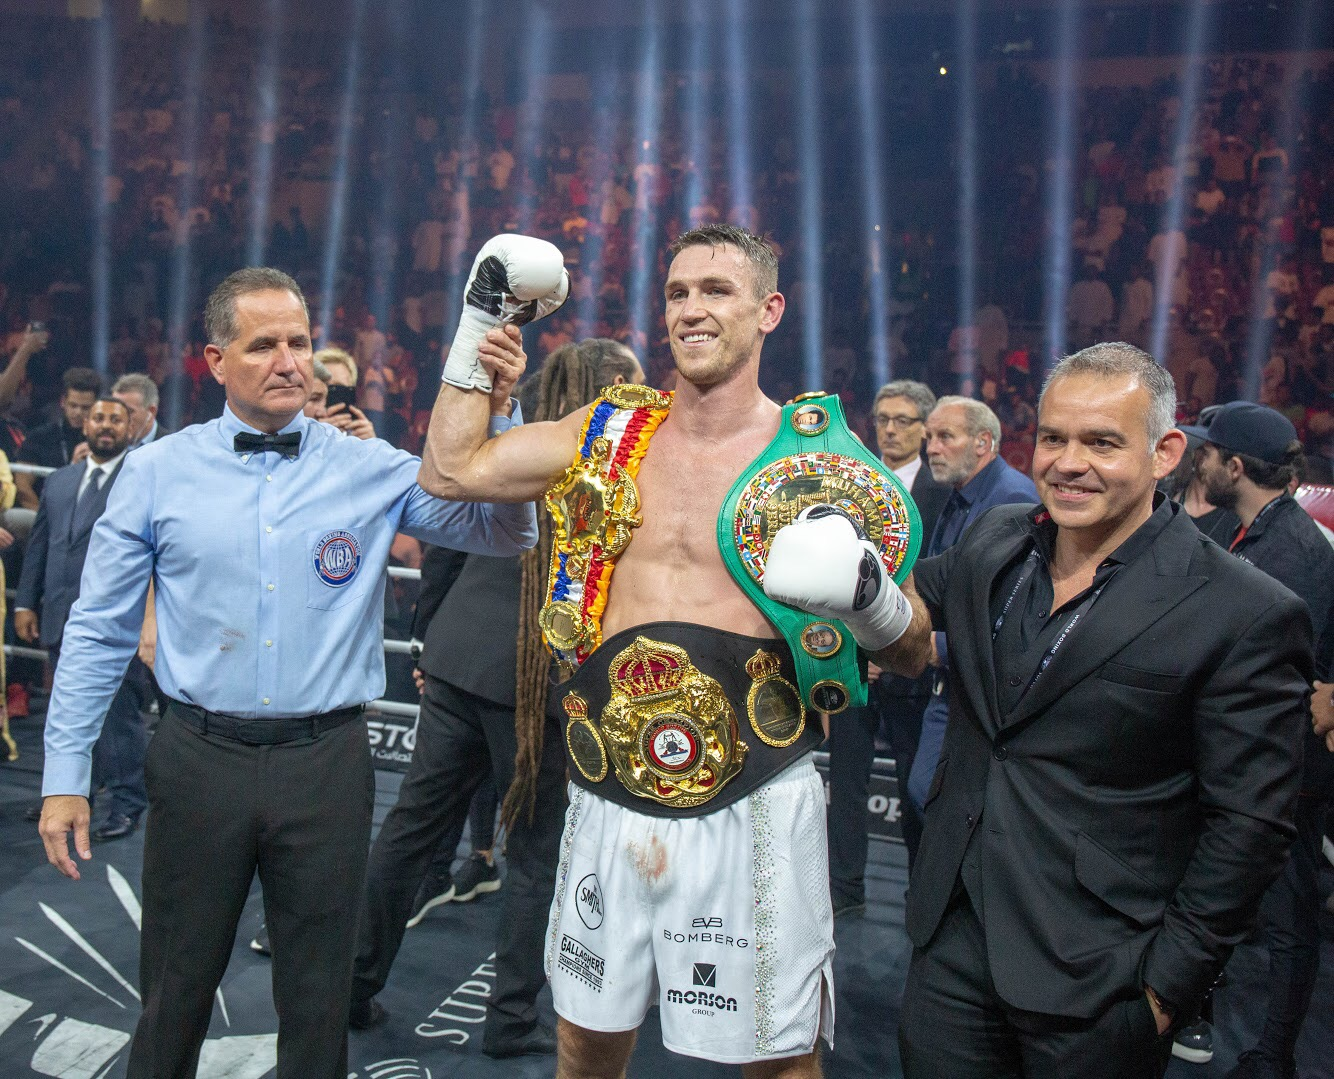 Callum Smith will defend WBA Super Title against N'Jikam